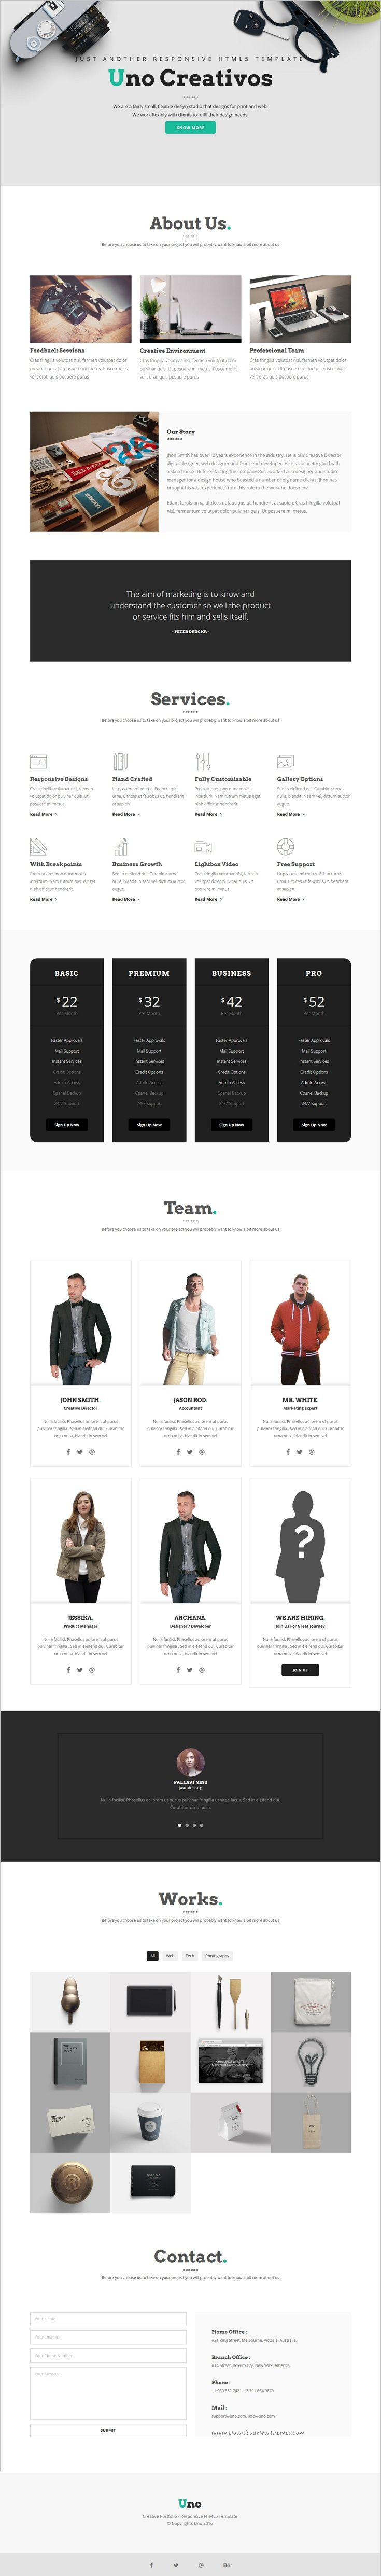 Uno is a modern and creative Bootstrap #HTML template for stunning #startup #agencies or portfolio website with 4 unique homepage layouts download now➩ https://themeforest.net/item/uno-creative-one-page-multi-page-html5-template/18466568?ref=Datasata